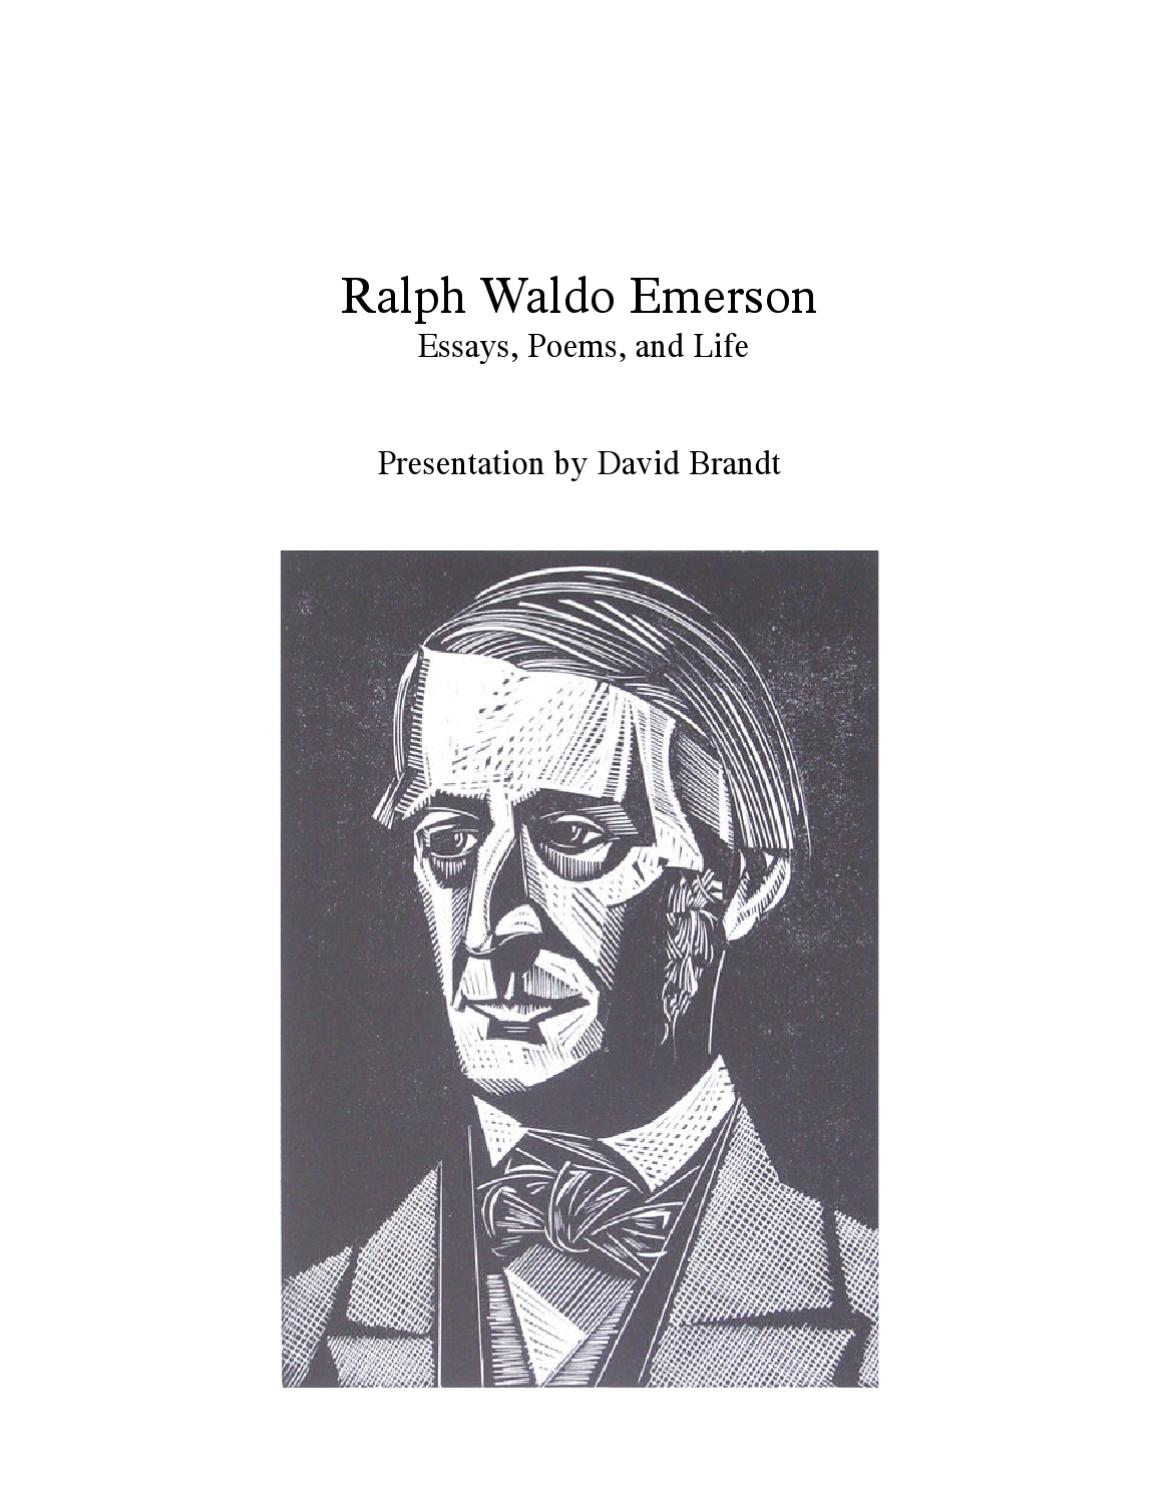 ralph waldo emerson essay composition Ralph waldo emerson a wise writer will feel that the ends of study and composition are best answered by i shall therefore conclude this essay with some.